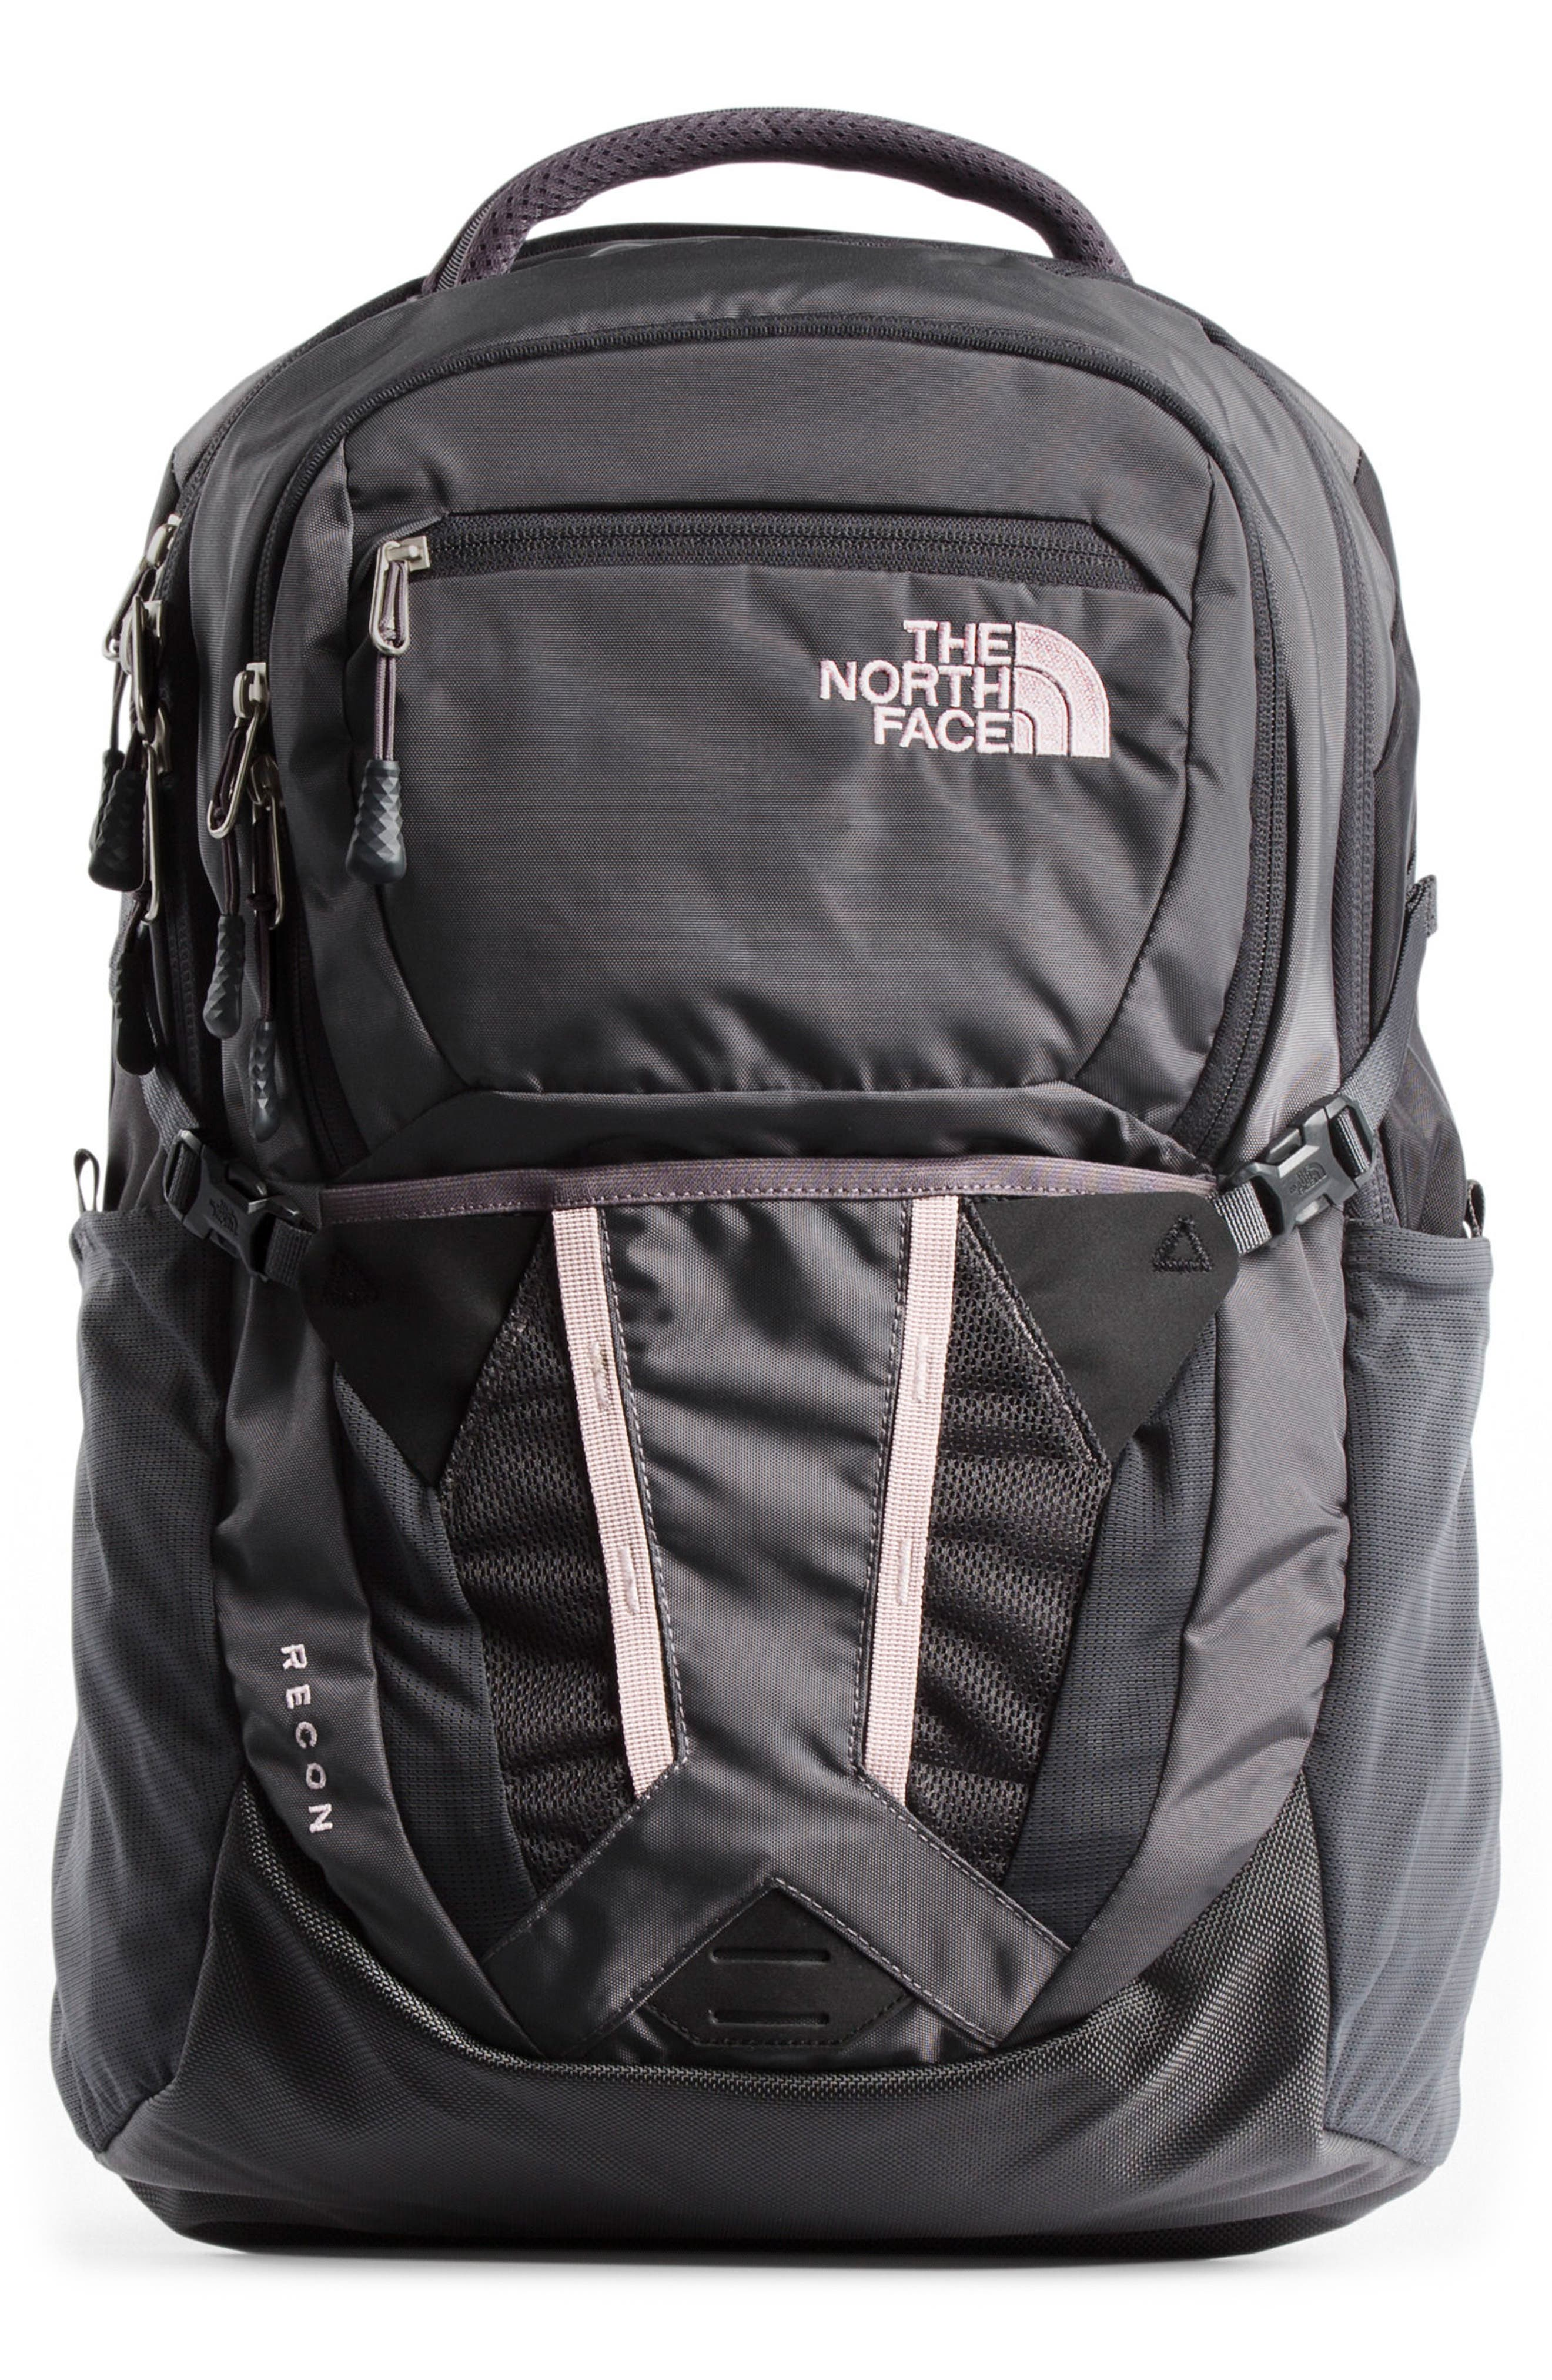 THE NORTH FACE Recon Backpack, Main, color, RABBIT GREY/ GREY